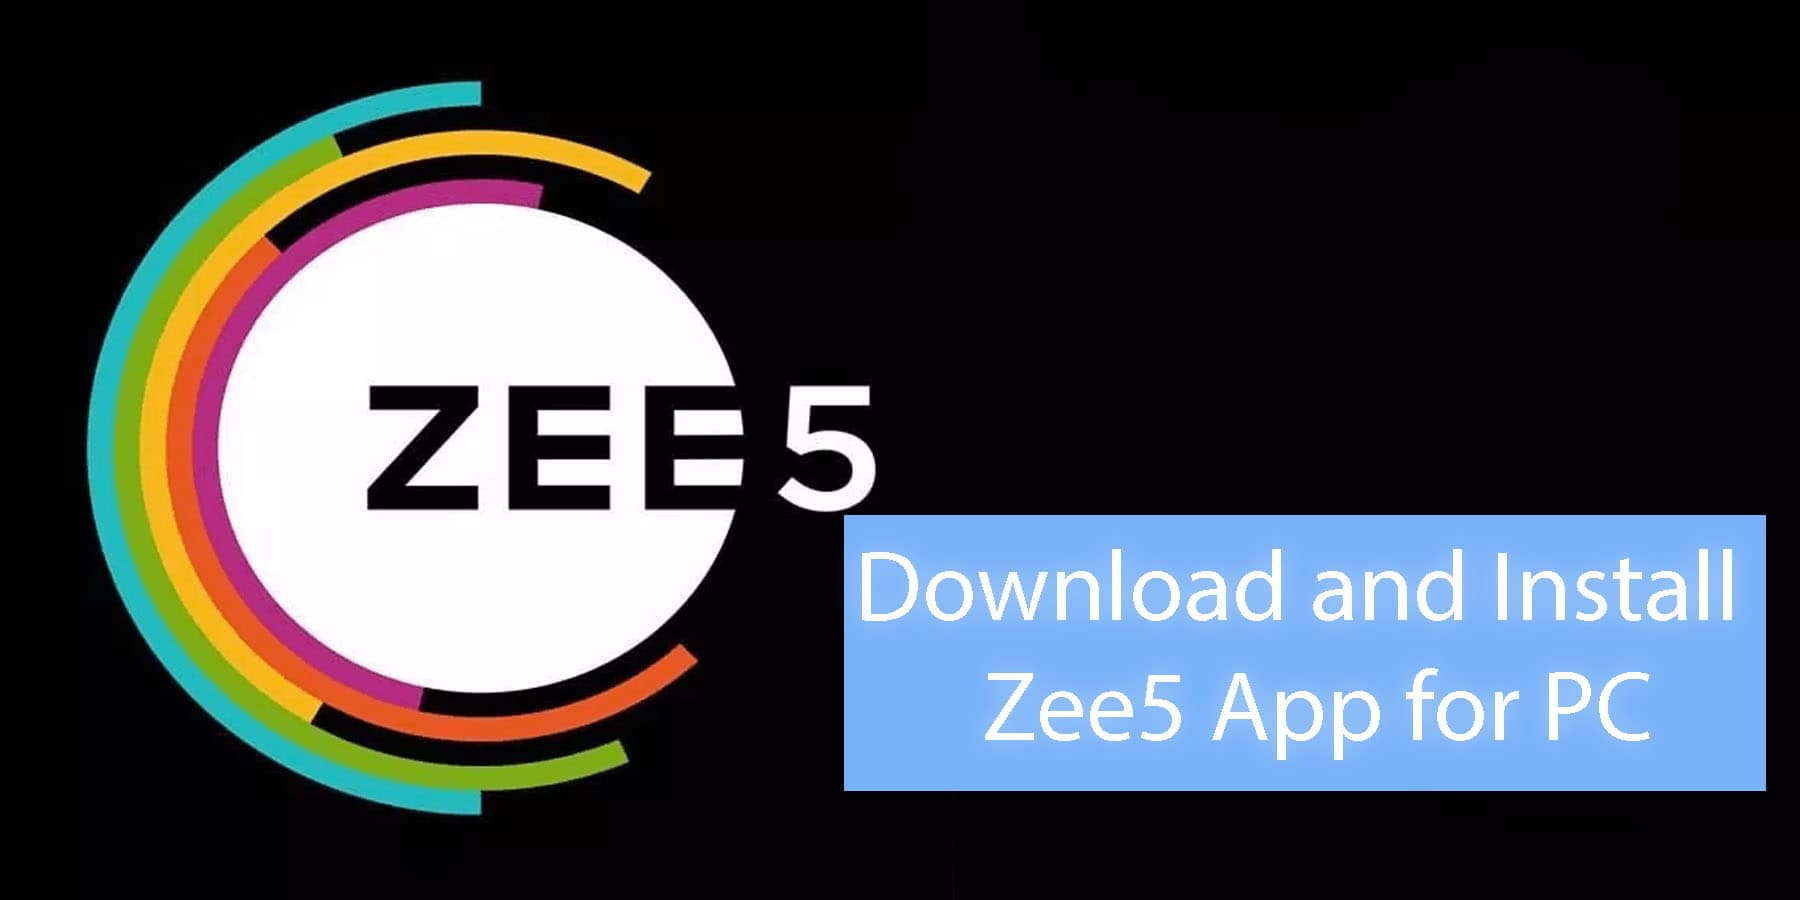 Download and Install Zee5 App for PC, Windows 7/8/8 1/10